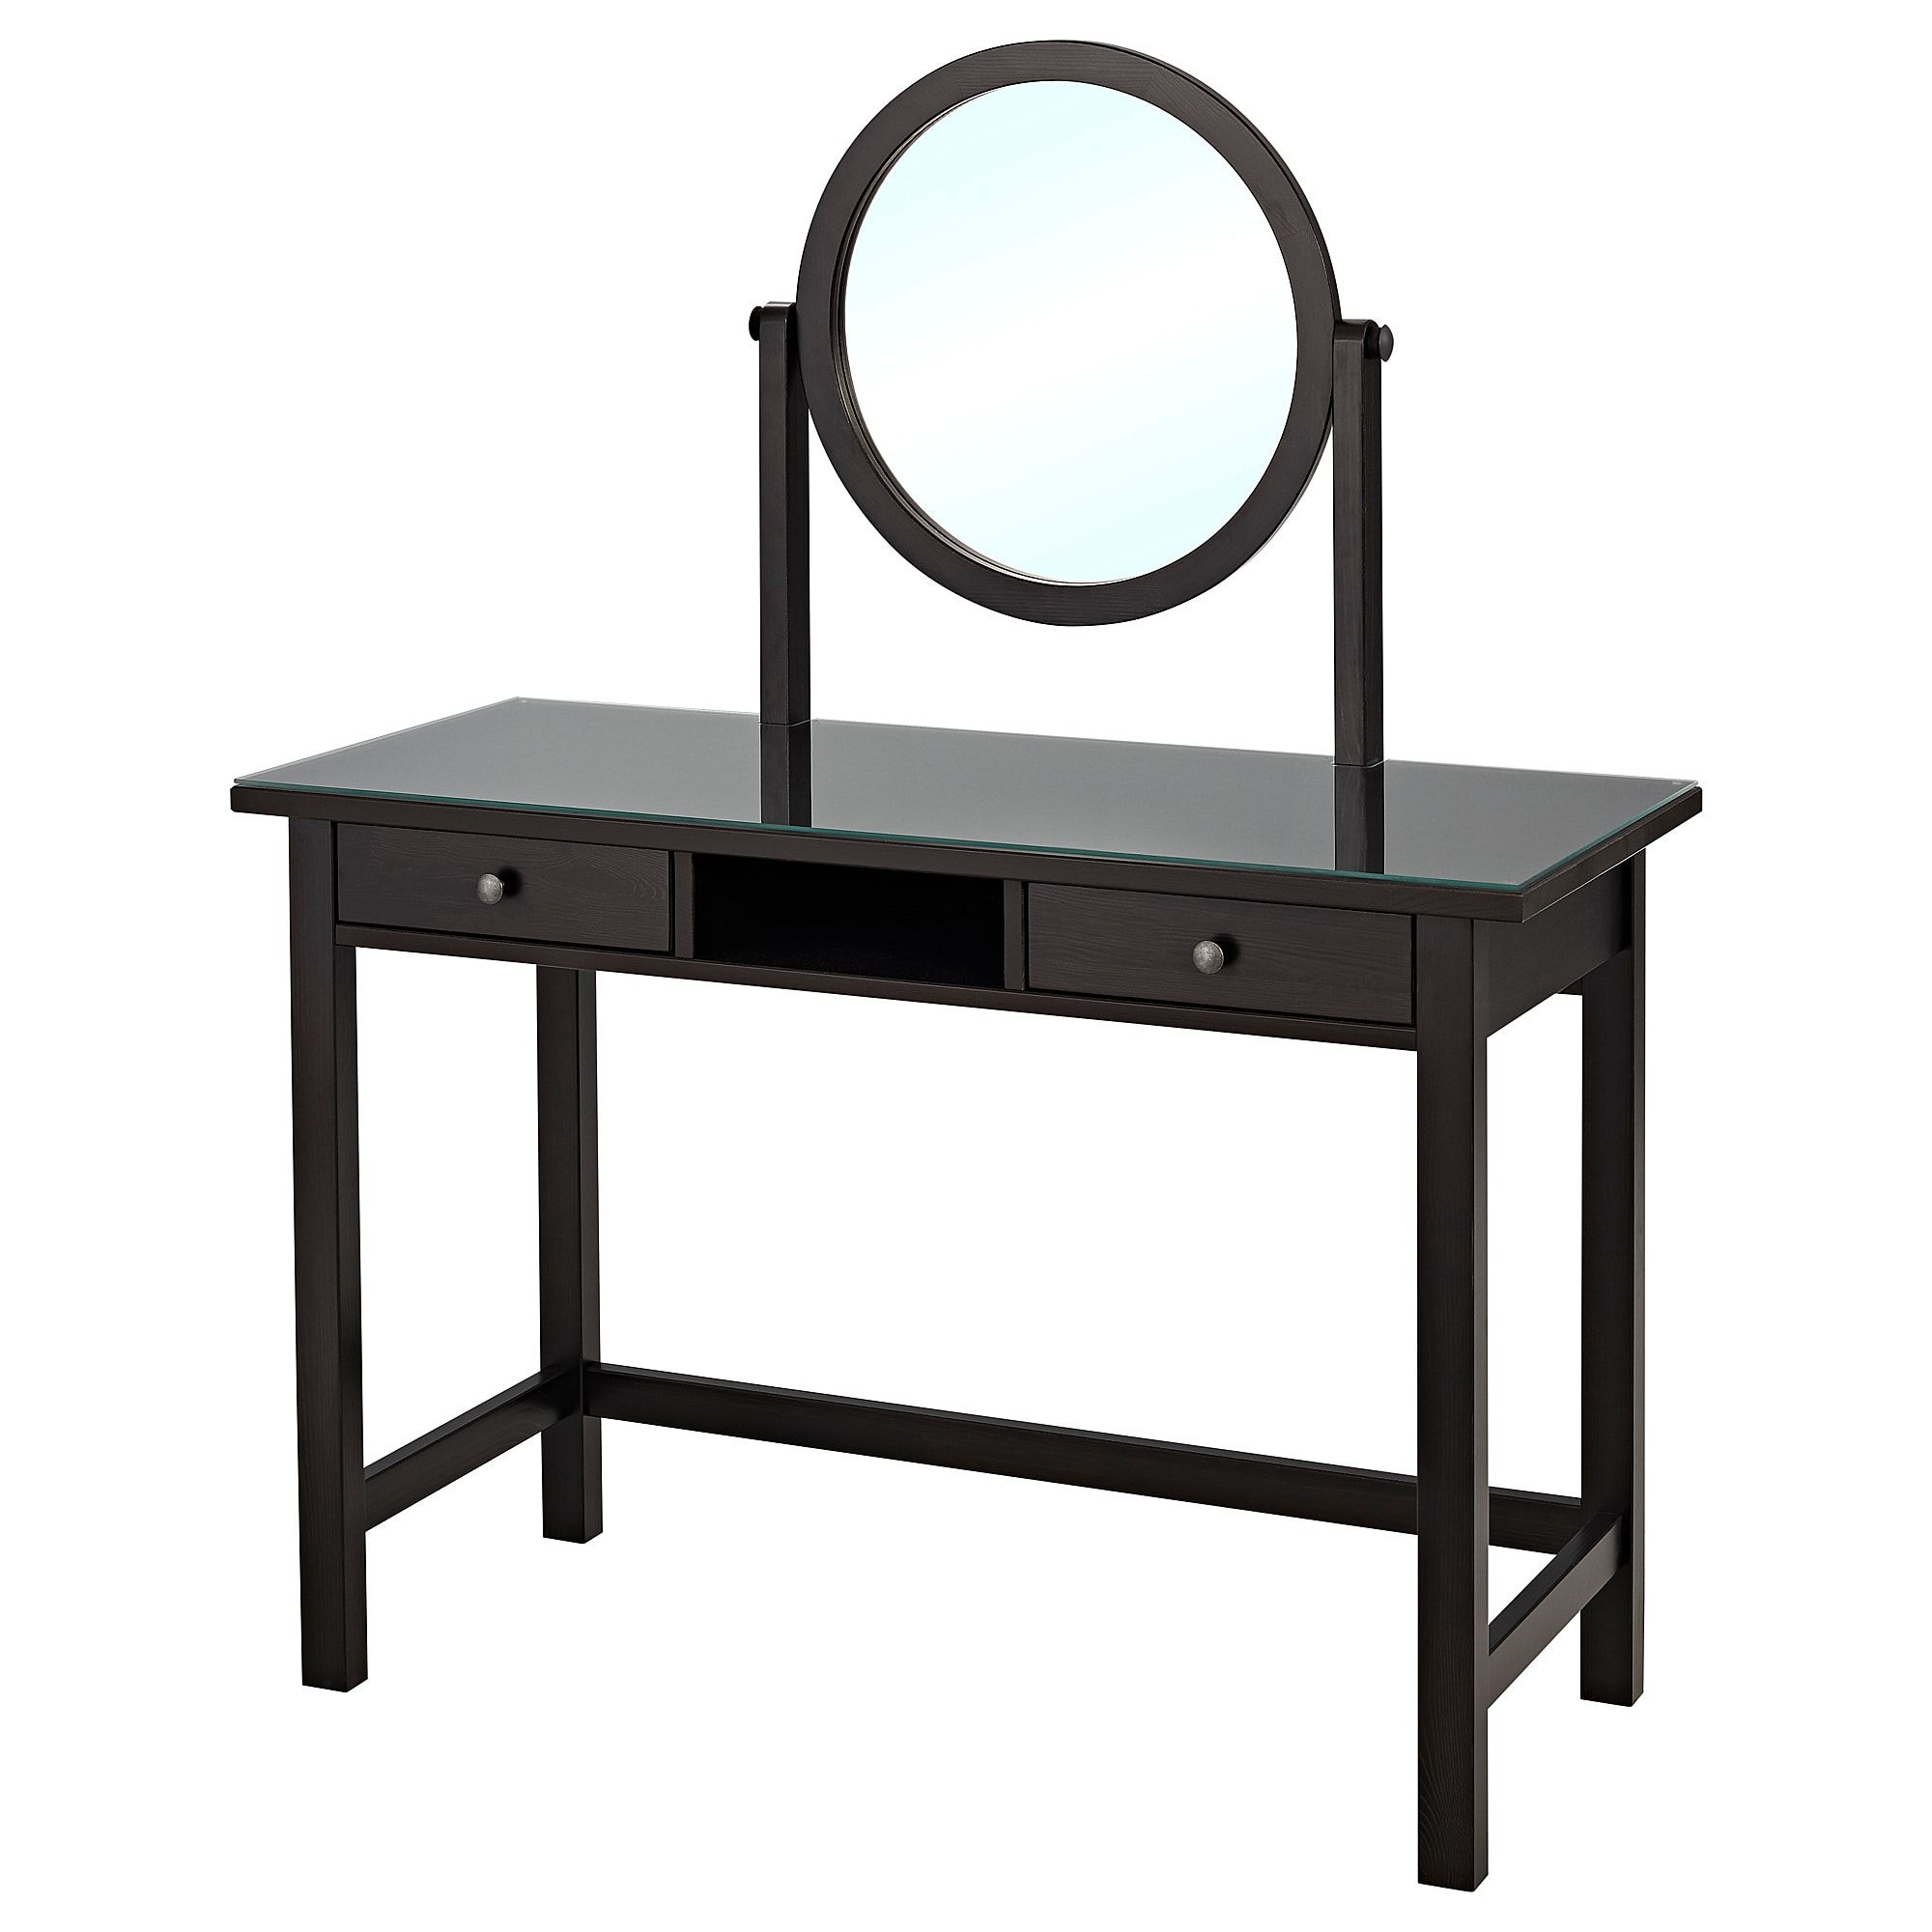 Hemnes Dressing Table With Mirror Black Brown 43 1 4x17 3 4 Dressing Table Mirror Malm Dressing Table Dressing Table